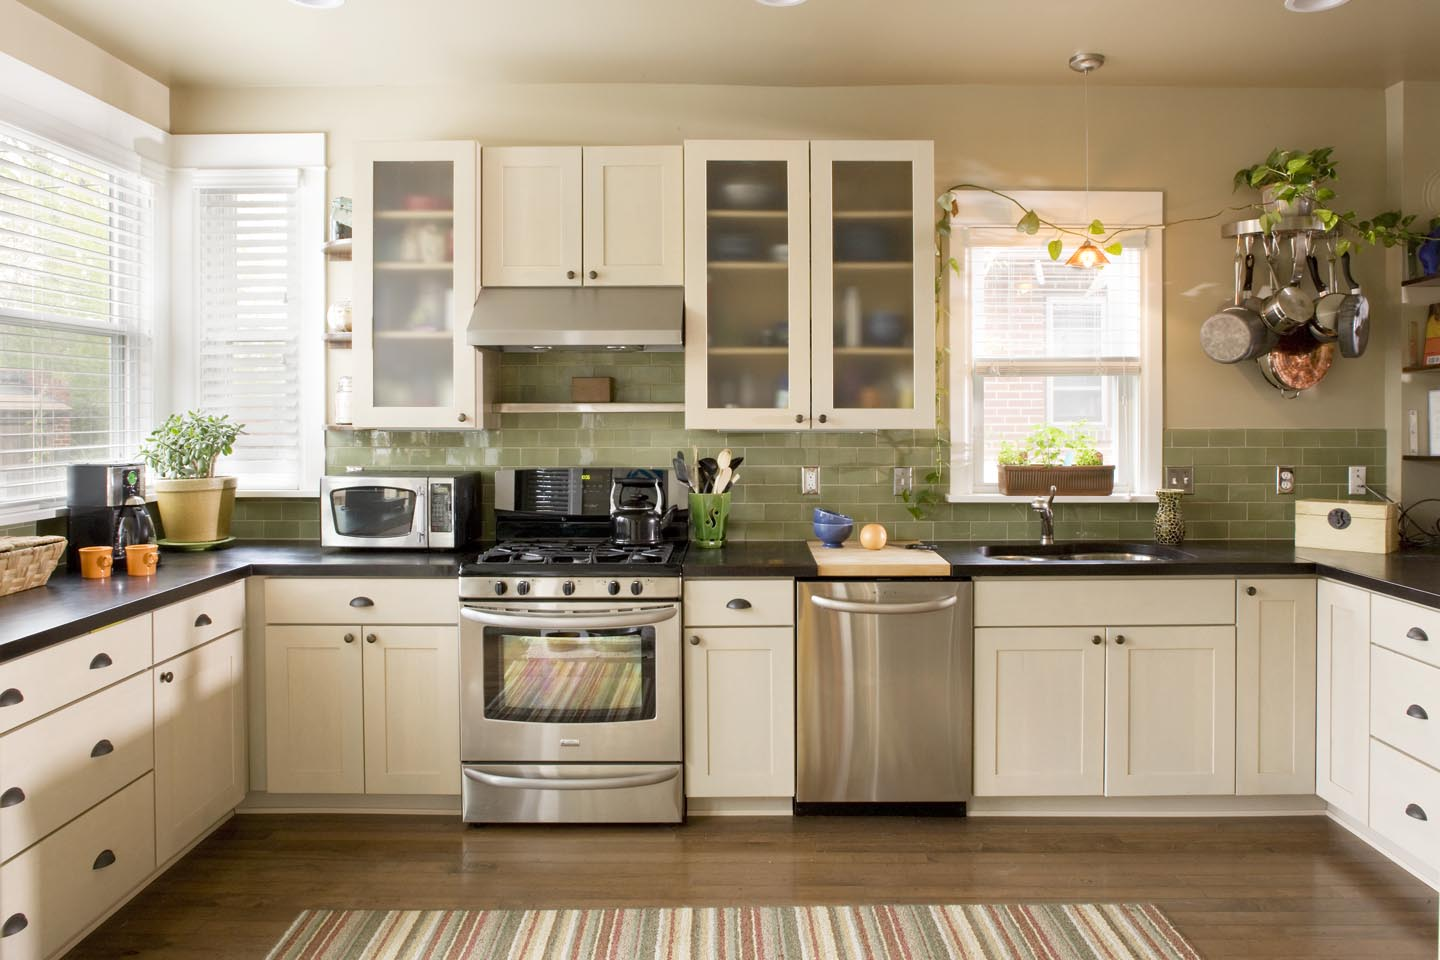 Berkeley backyard addition classic homeworks for Avocado kitchen cabinets